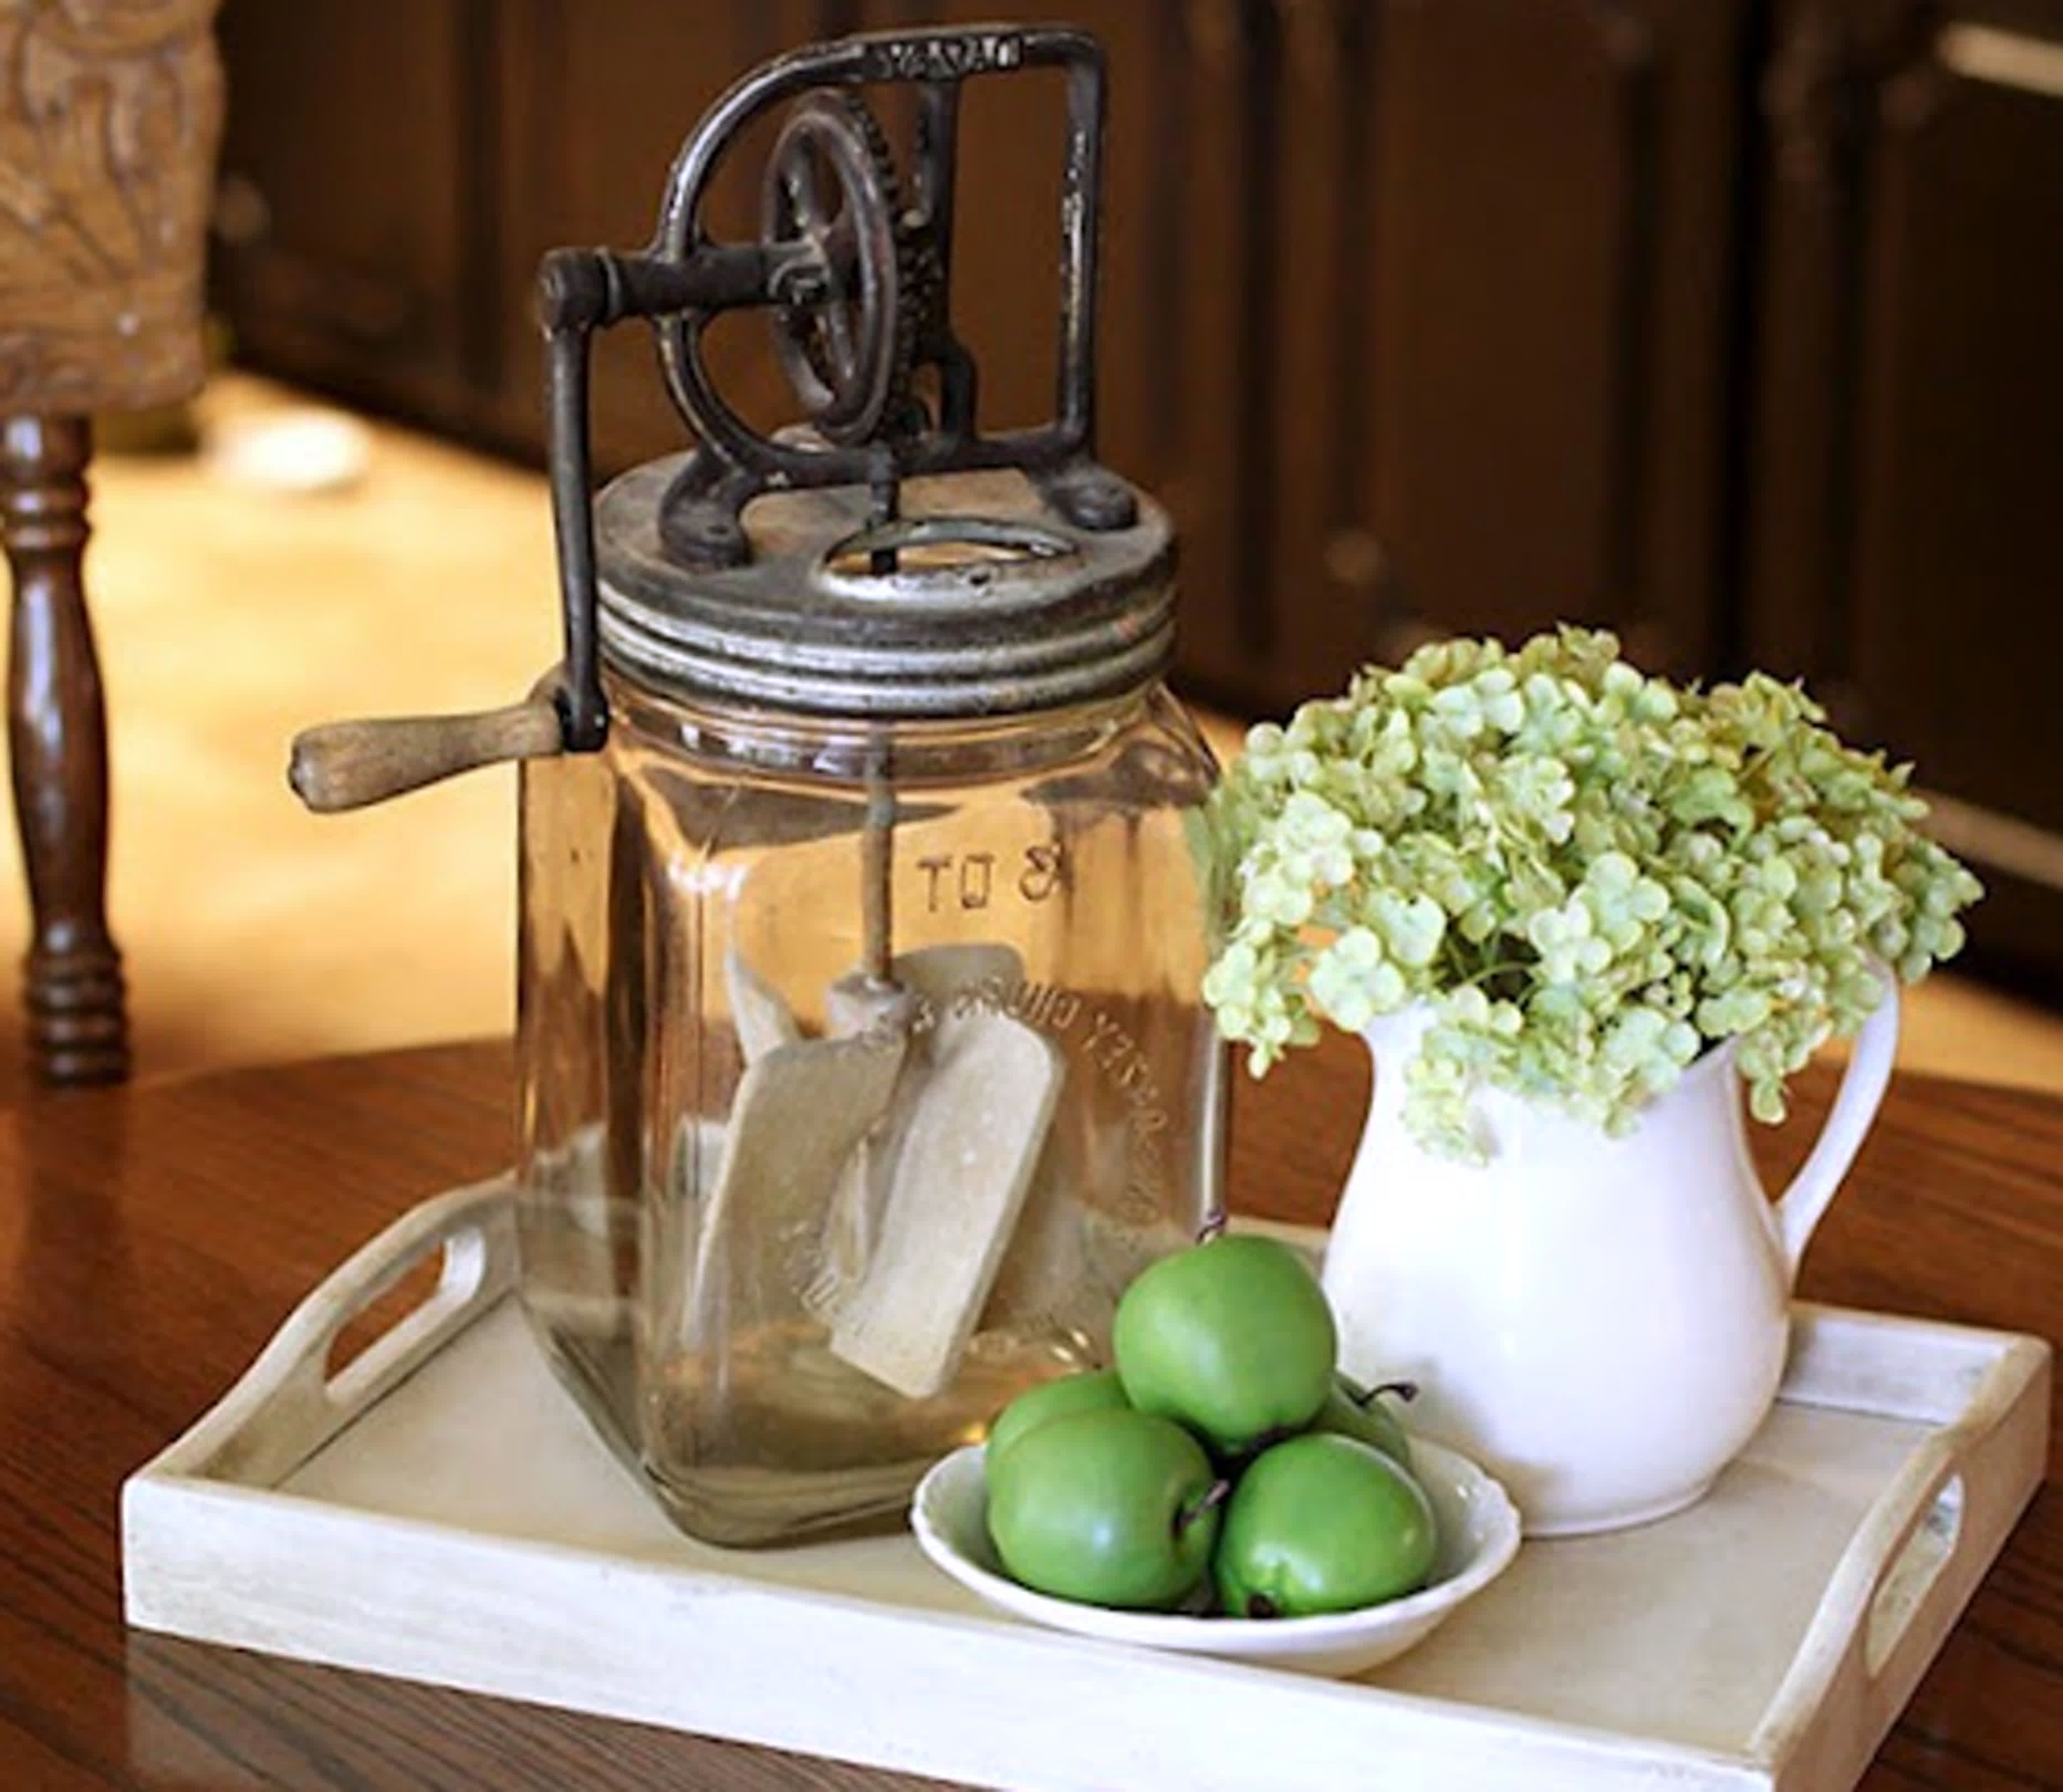 10 Ideas For A Table Centerpiece Most Of The Incredible And Also Interesting Everyday Table Centerpieces Kitchen Table Centerpiece Dining Room Table Centerpieces